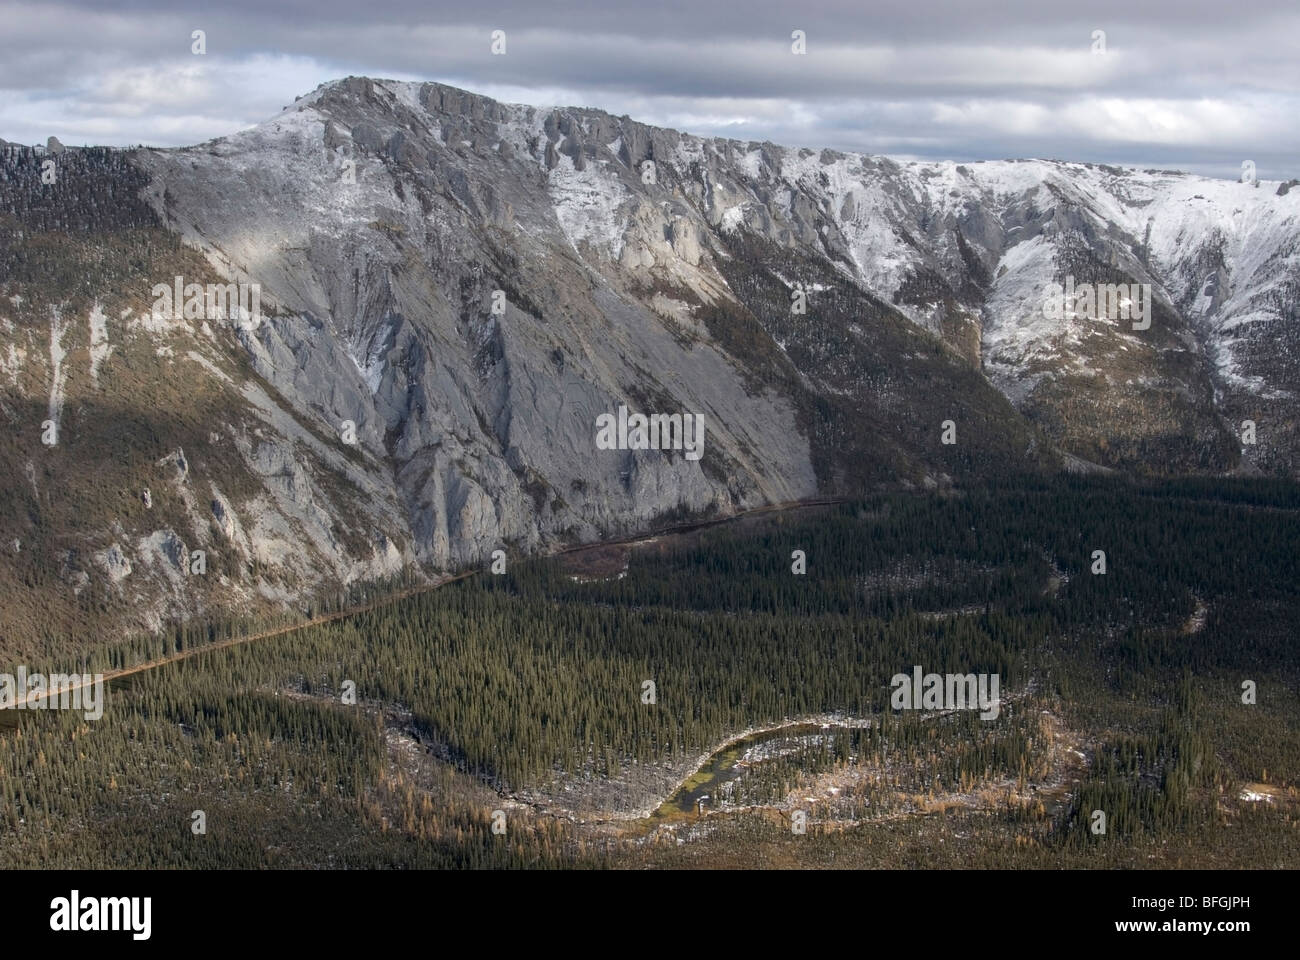 Aerial of Bear Cave Mountain and Fishing Branch River in northern Yukon Territory Canada in early winter. Mountain - Stock Image